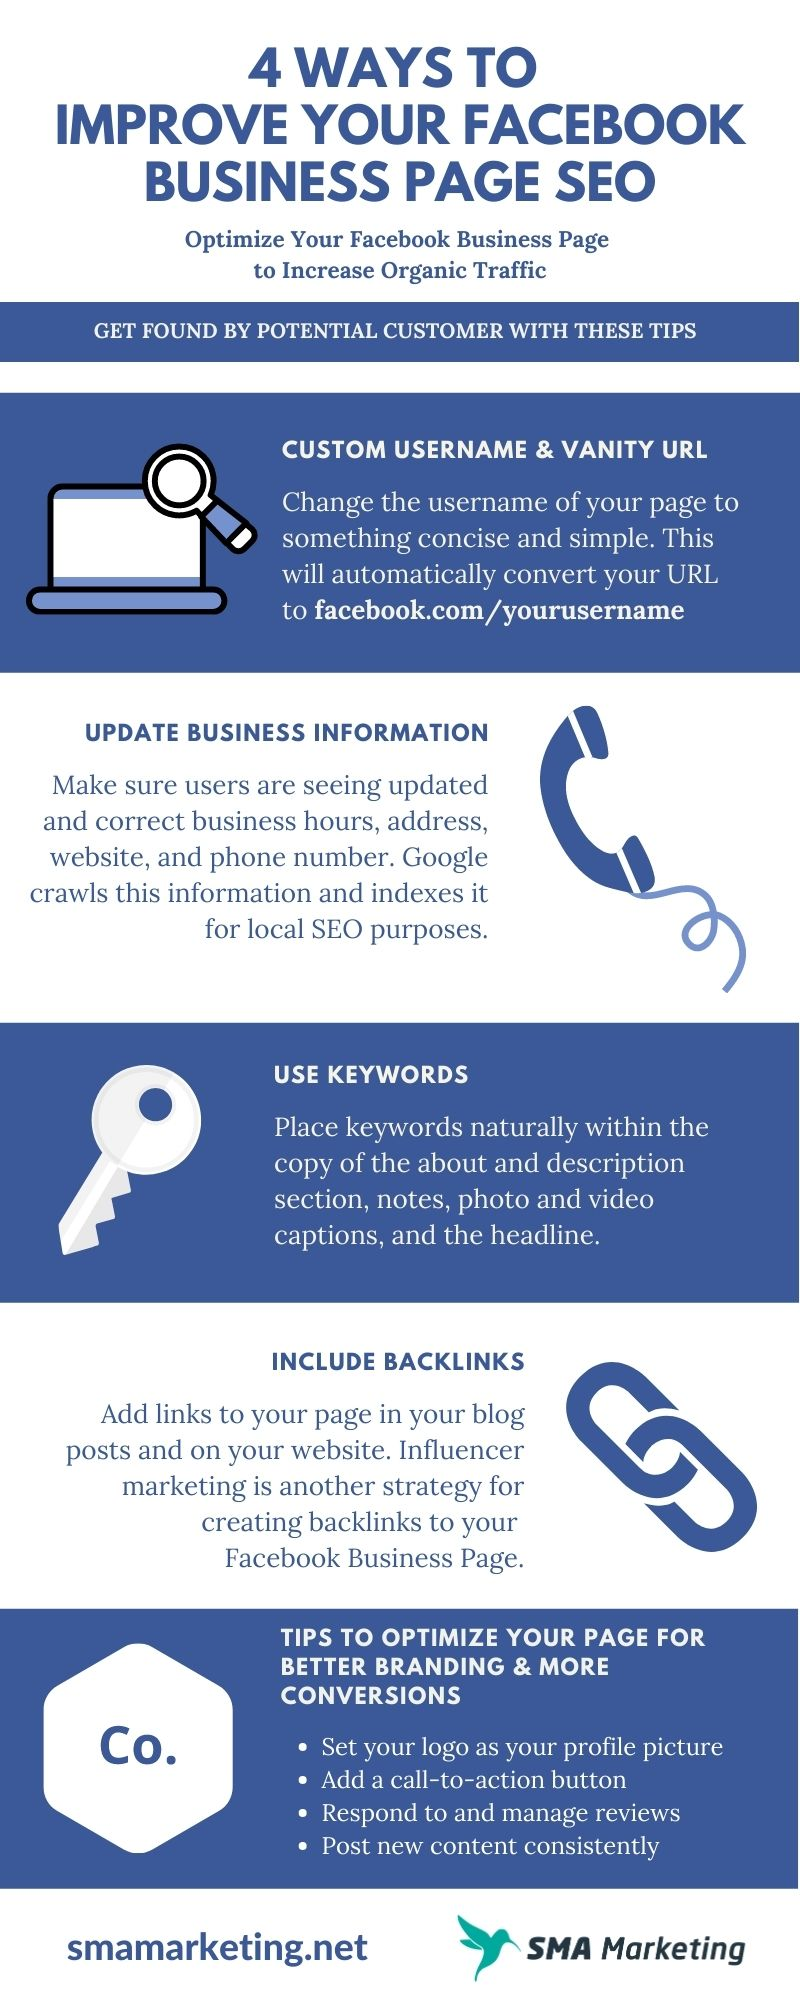 4 Ways to  Improve Your Facebook Business Page SEO (1)